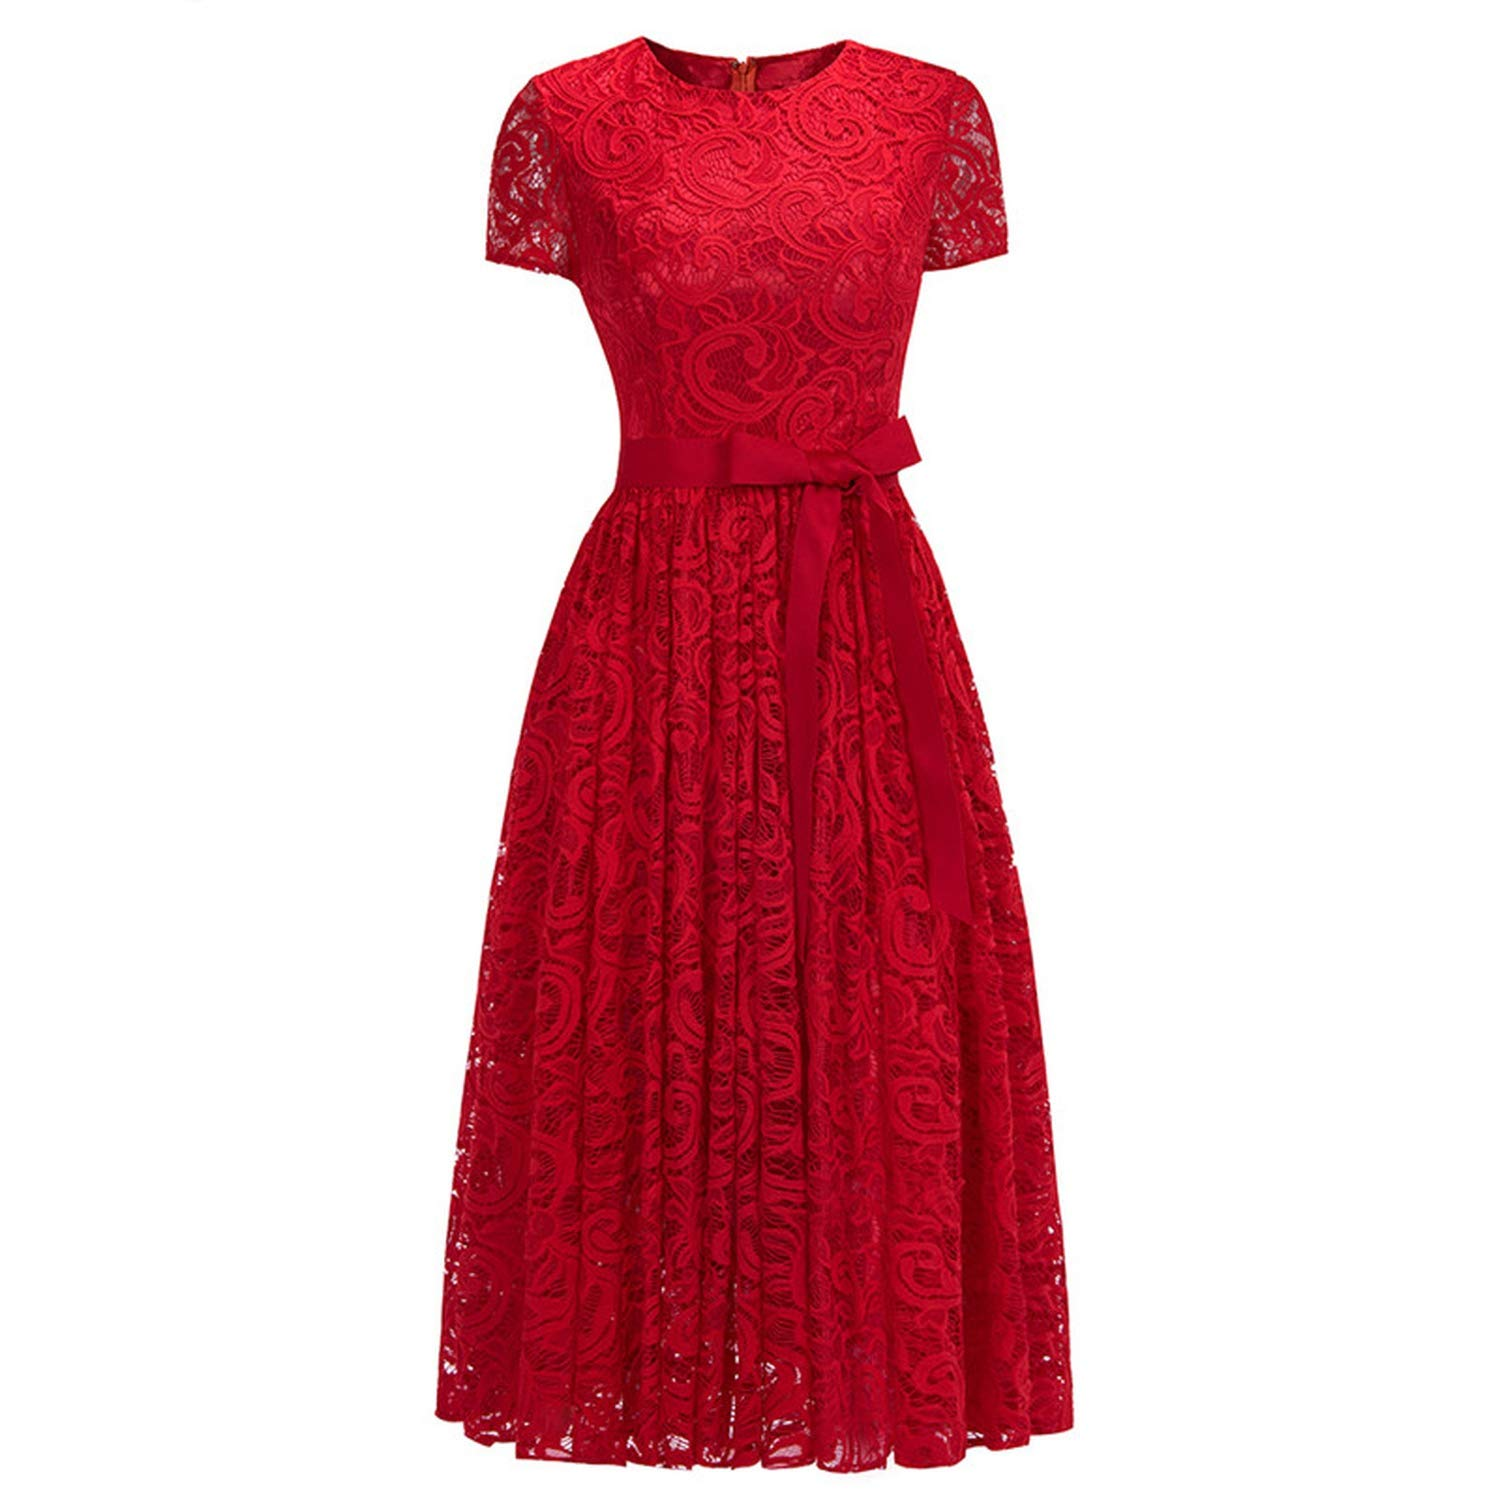 Red Sexy Elegant Pink Lace Short Evening Dress Cap Sleeve A line Evening Gown Party Dress